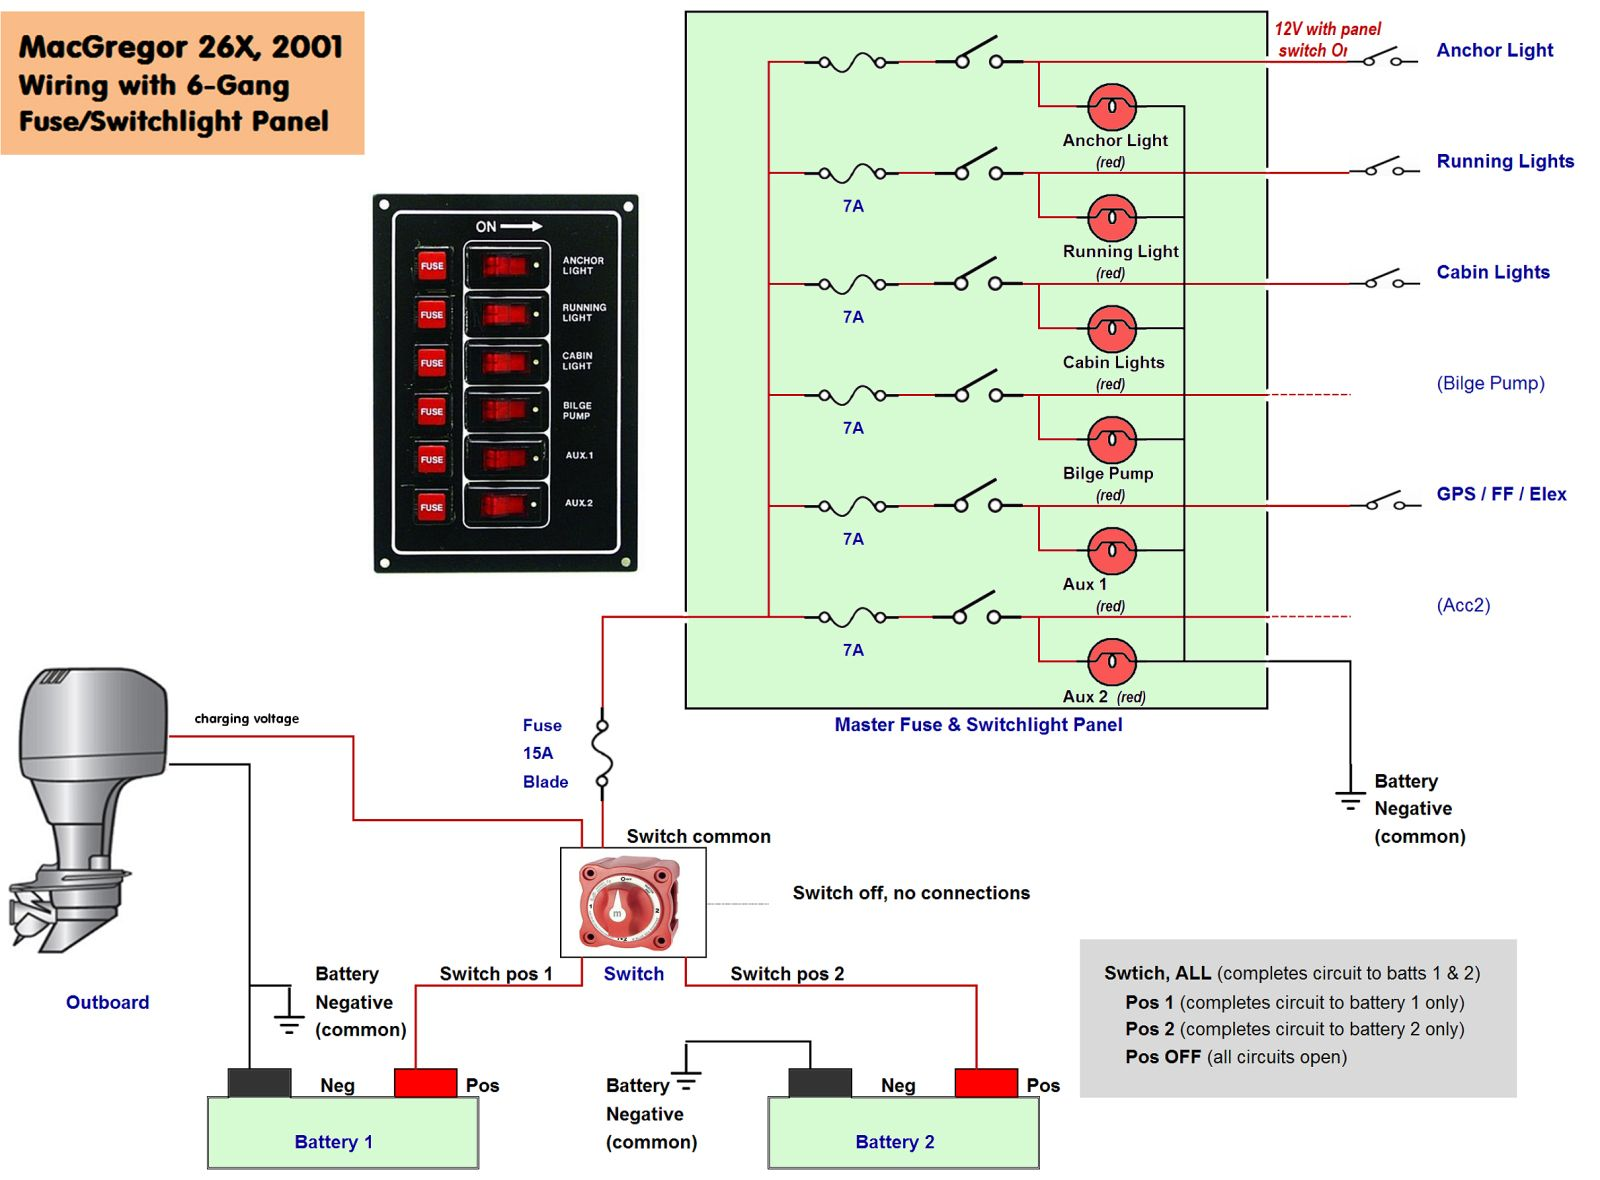 Tracker Boat Wiring Fuse Panel Diagram - Wiring Diagram Data fuss-activity  - fuss-activity.portorhoca.it | Bass Tracker Wiring Harness |  | portorhoca.it